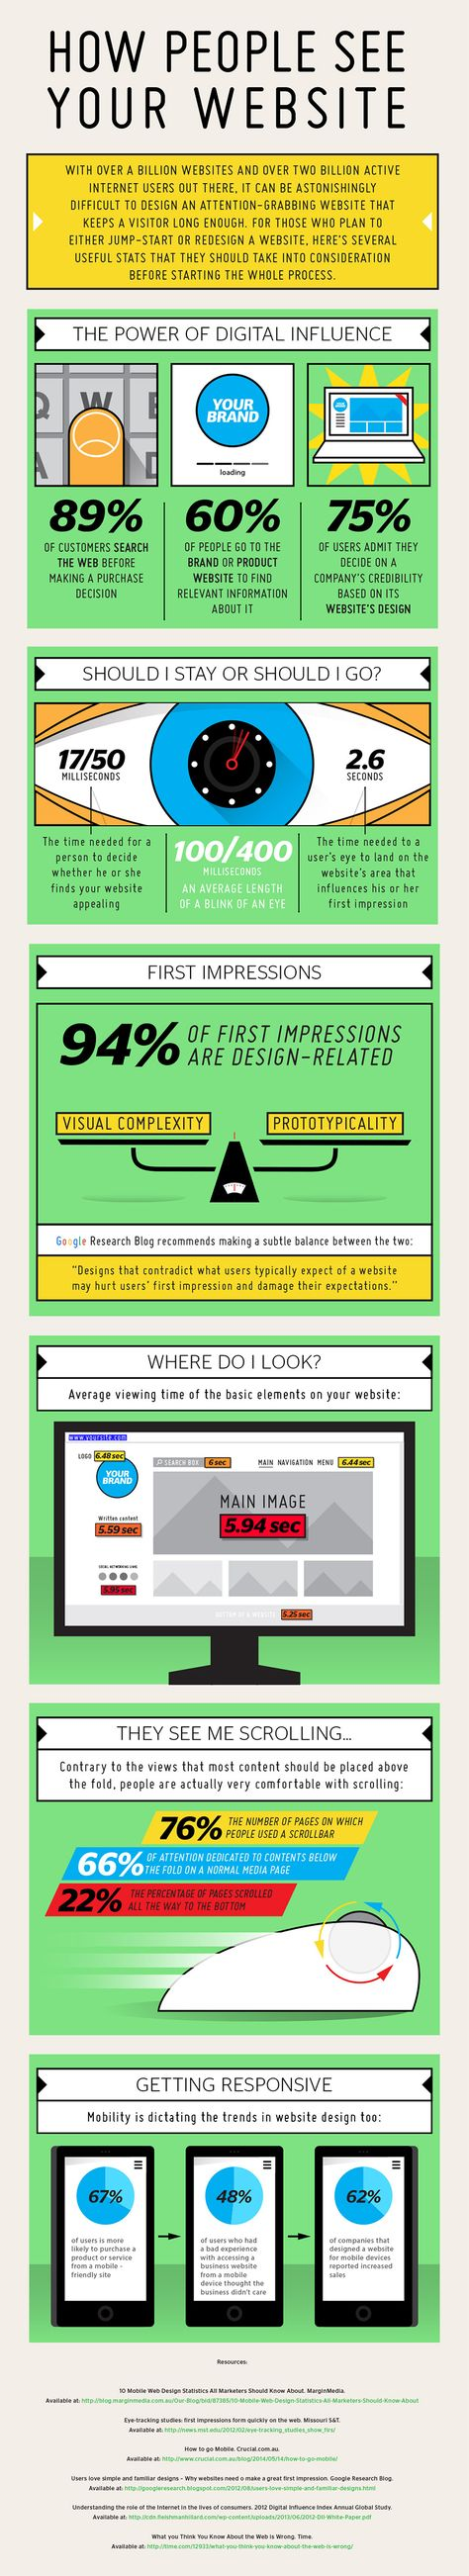 How People Judge Your Website Design & Decide Whether to Contact You